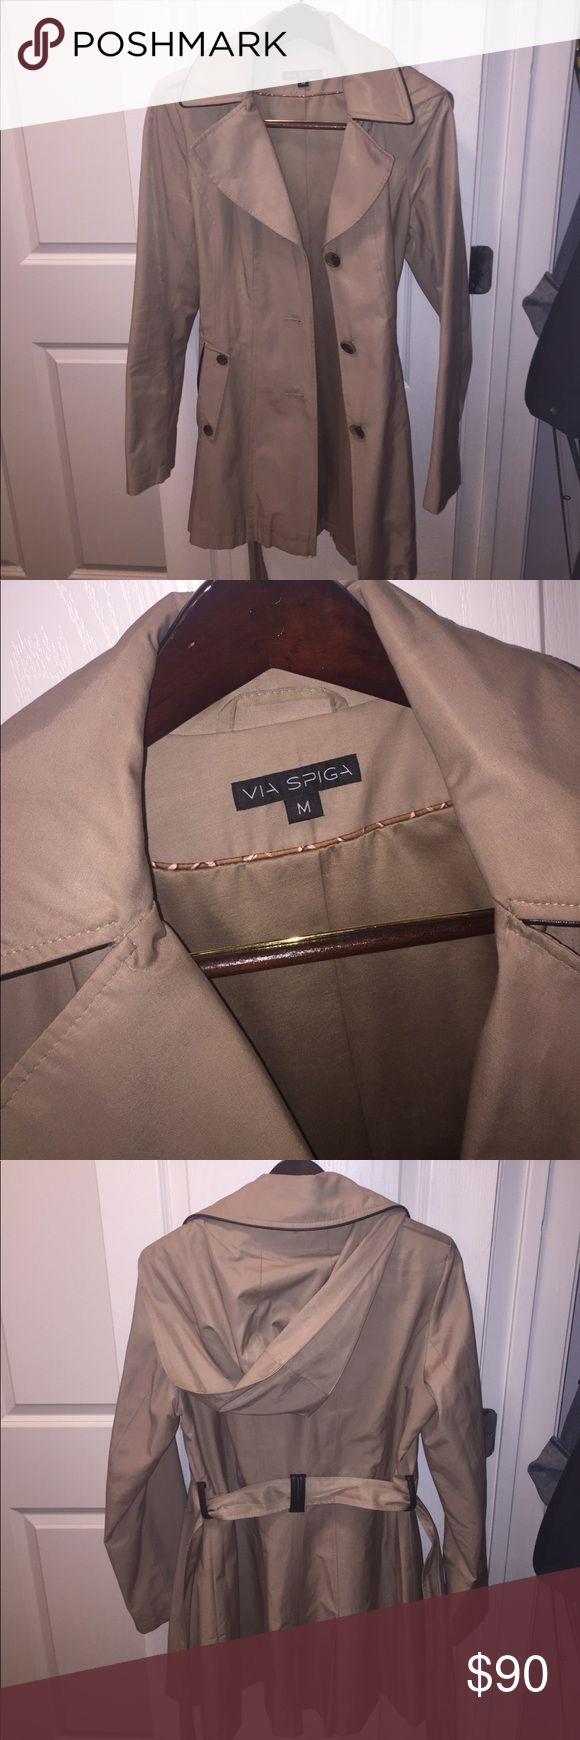 Via Spiga Rain Coat in Tan Worn less than 5 times. Tan Raincoat with hood and wrap belt. Buttons down middle. Pockets on both sides. $90 OBO. Via Spiga Jackets & Coats Trench Coats